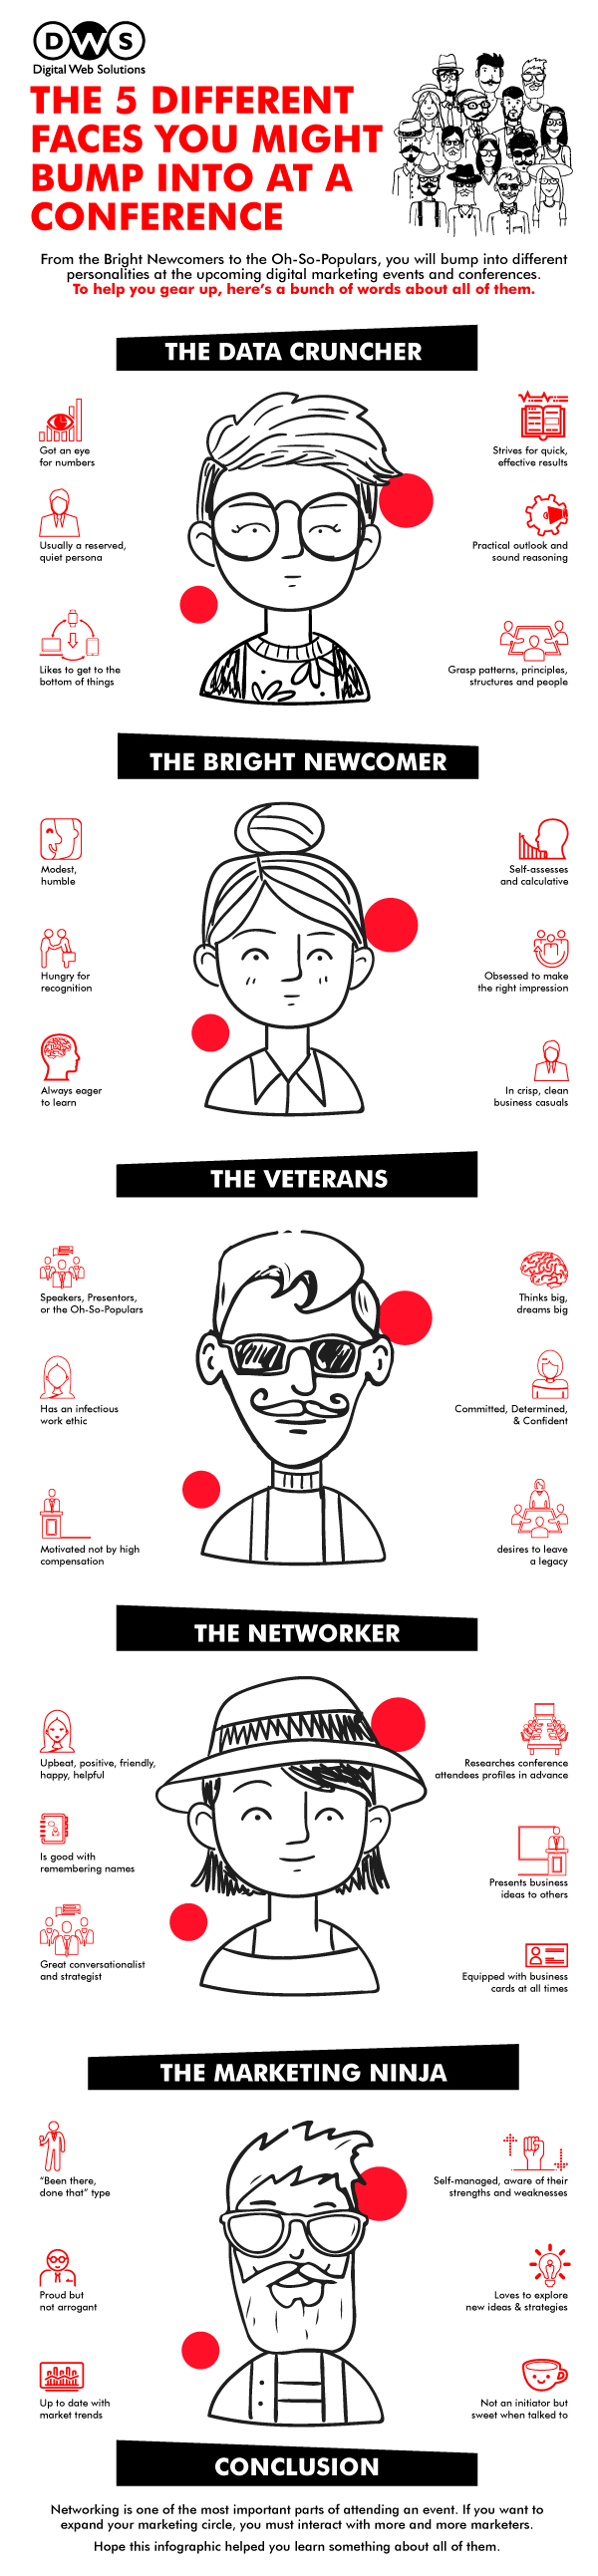 Infographic by DWS Crackitt